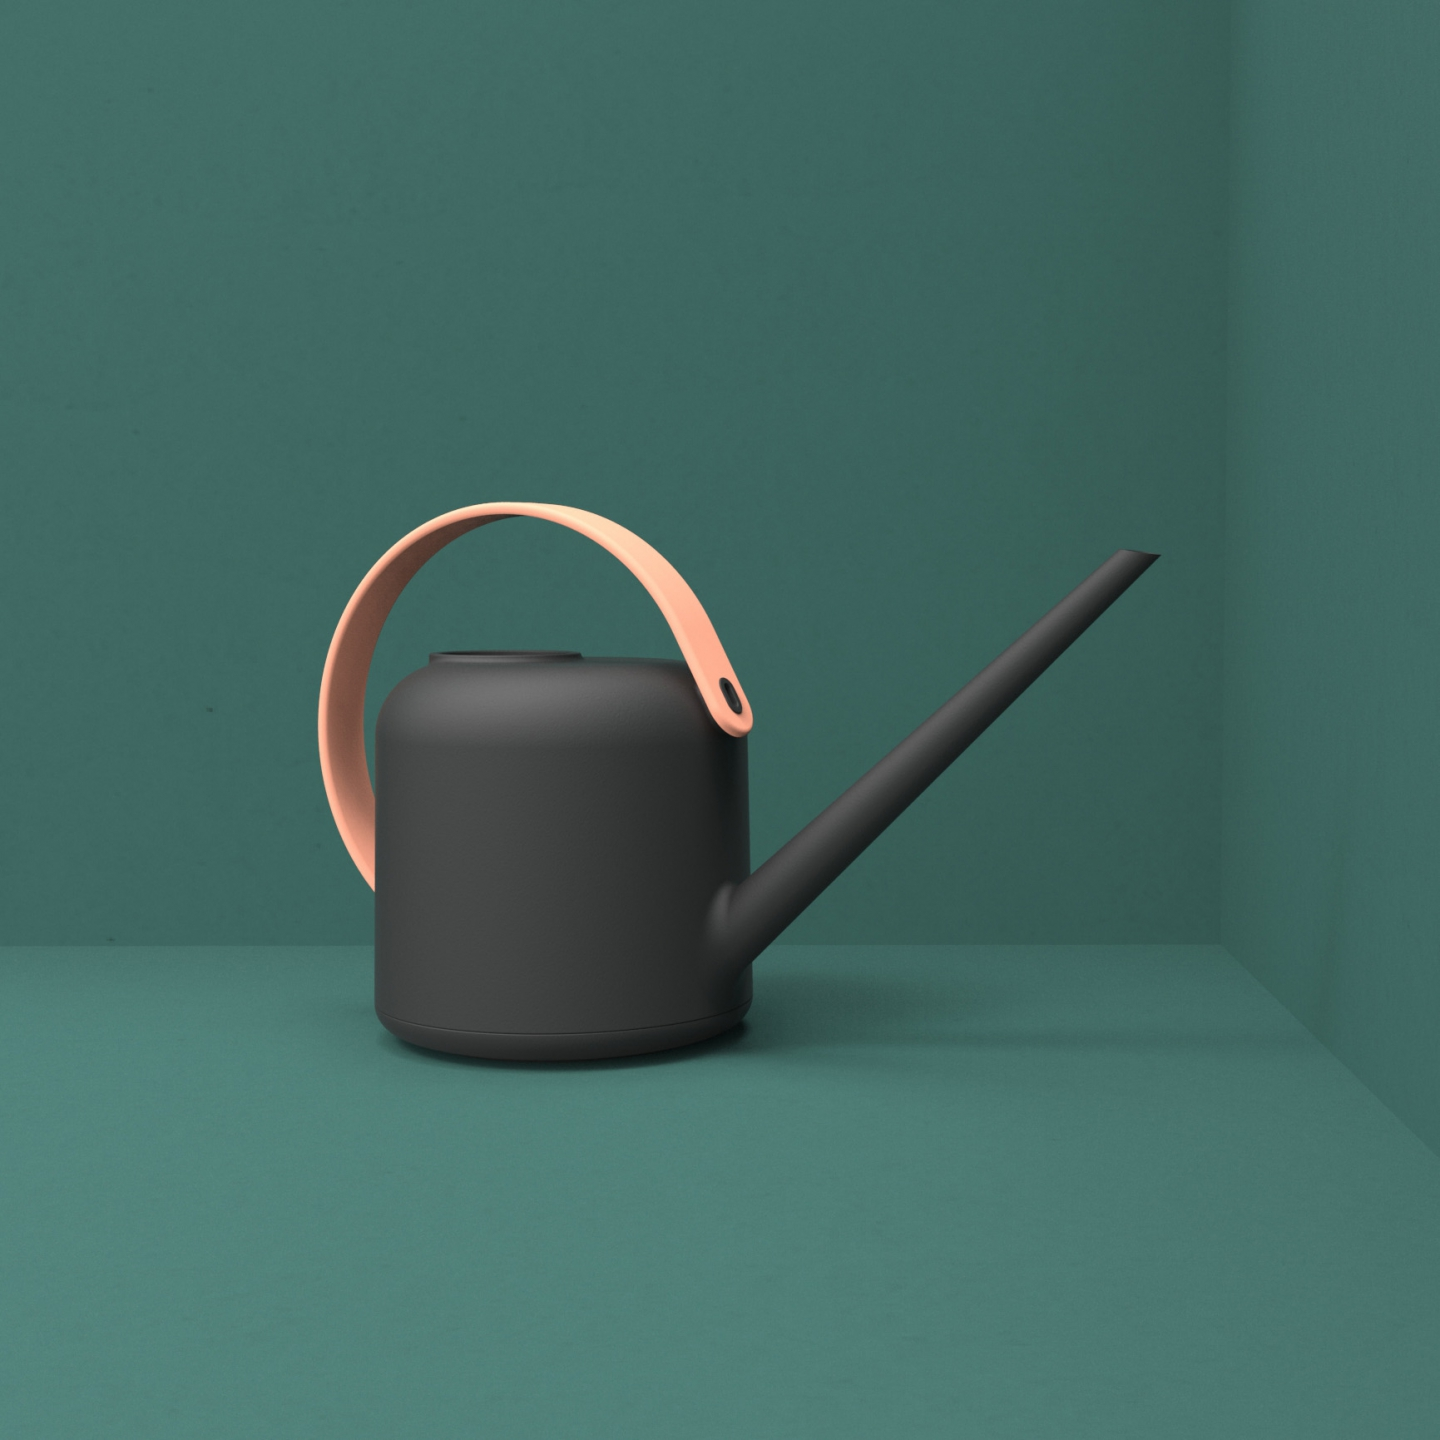 bfor soft watering can